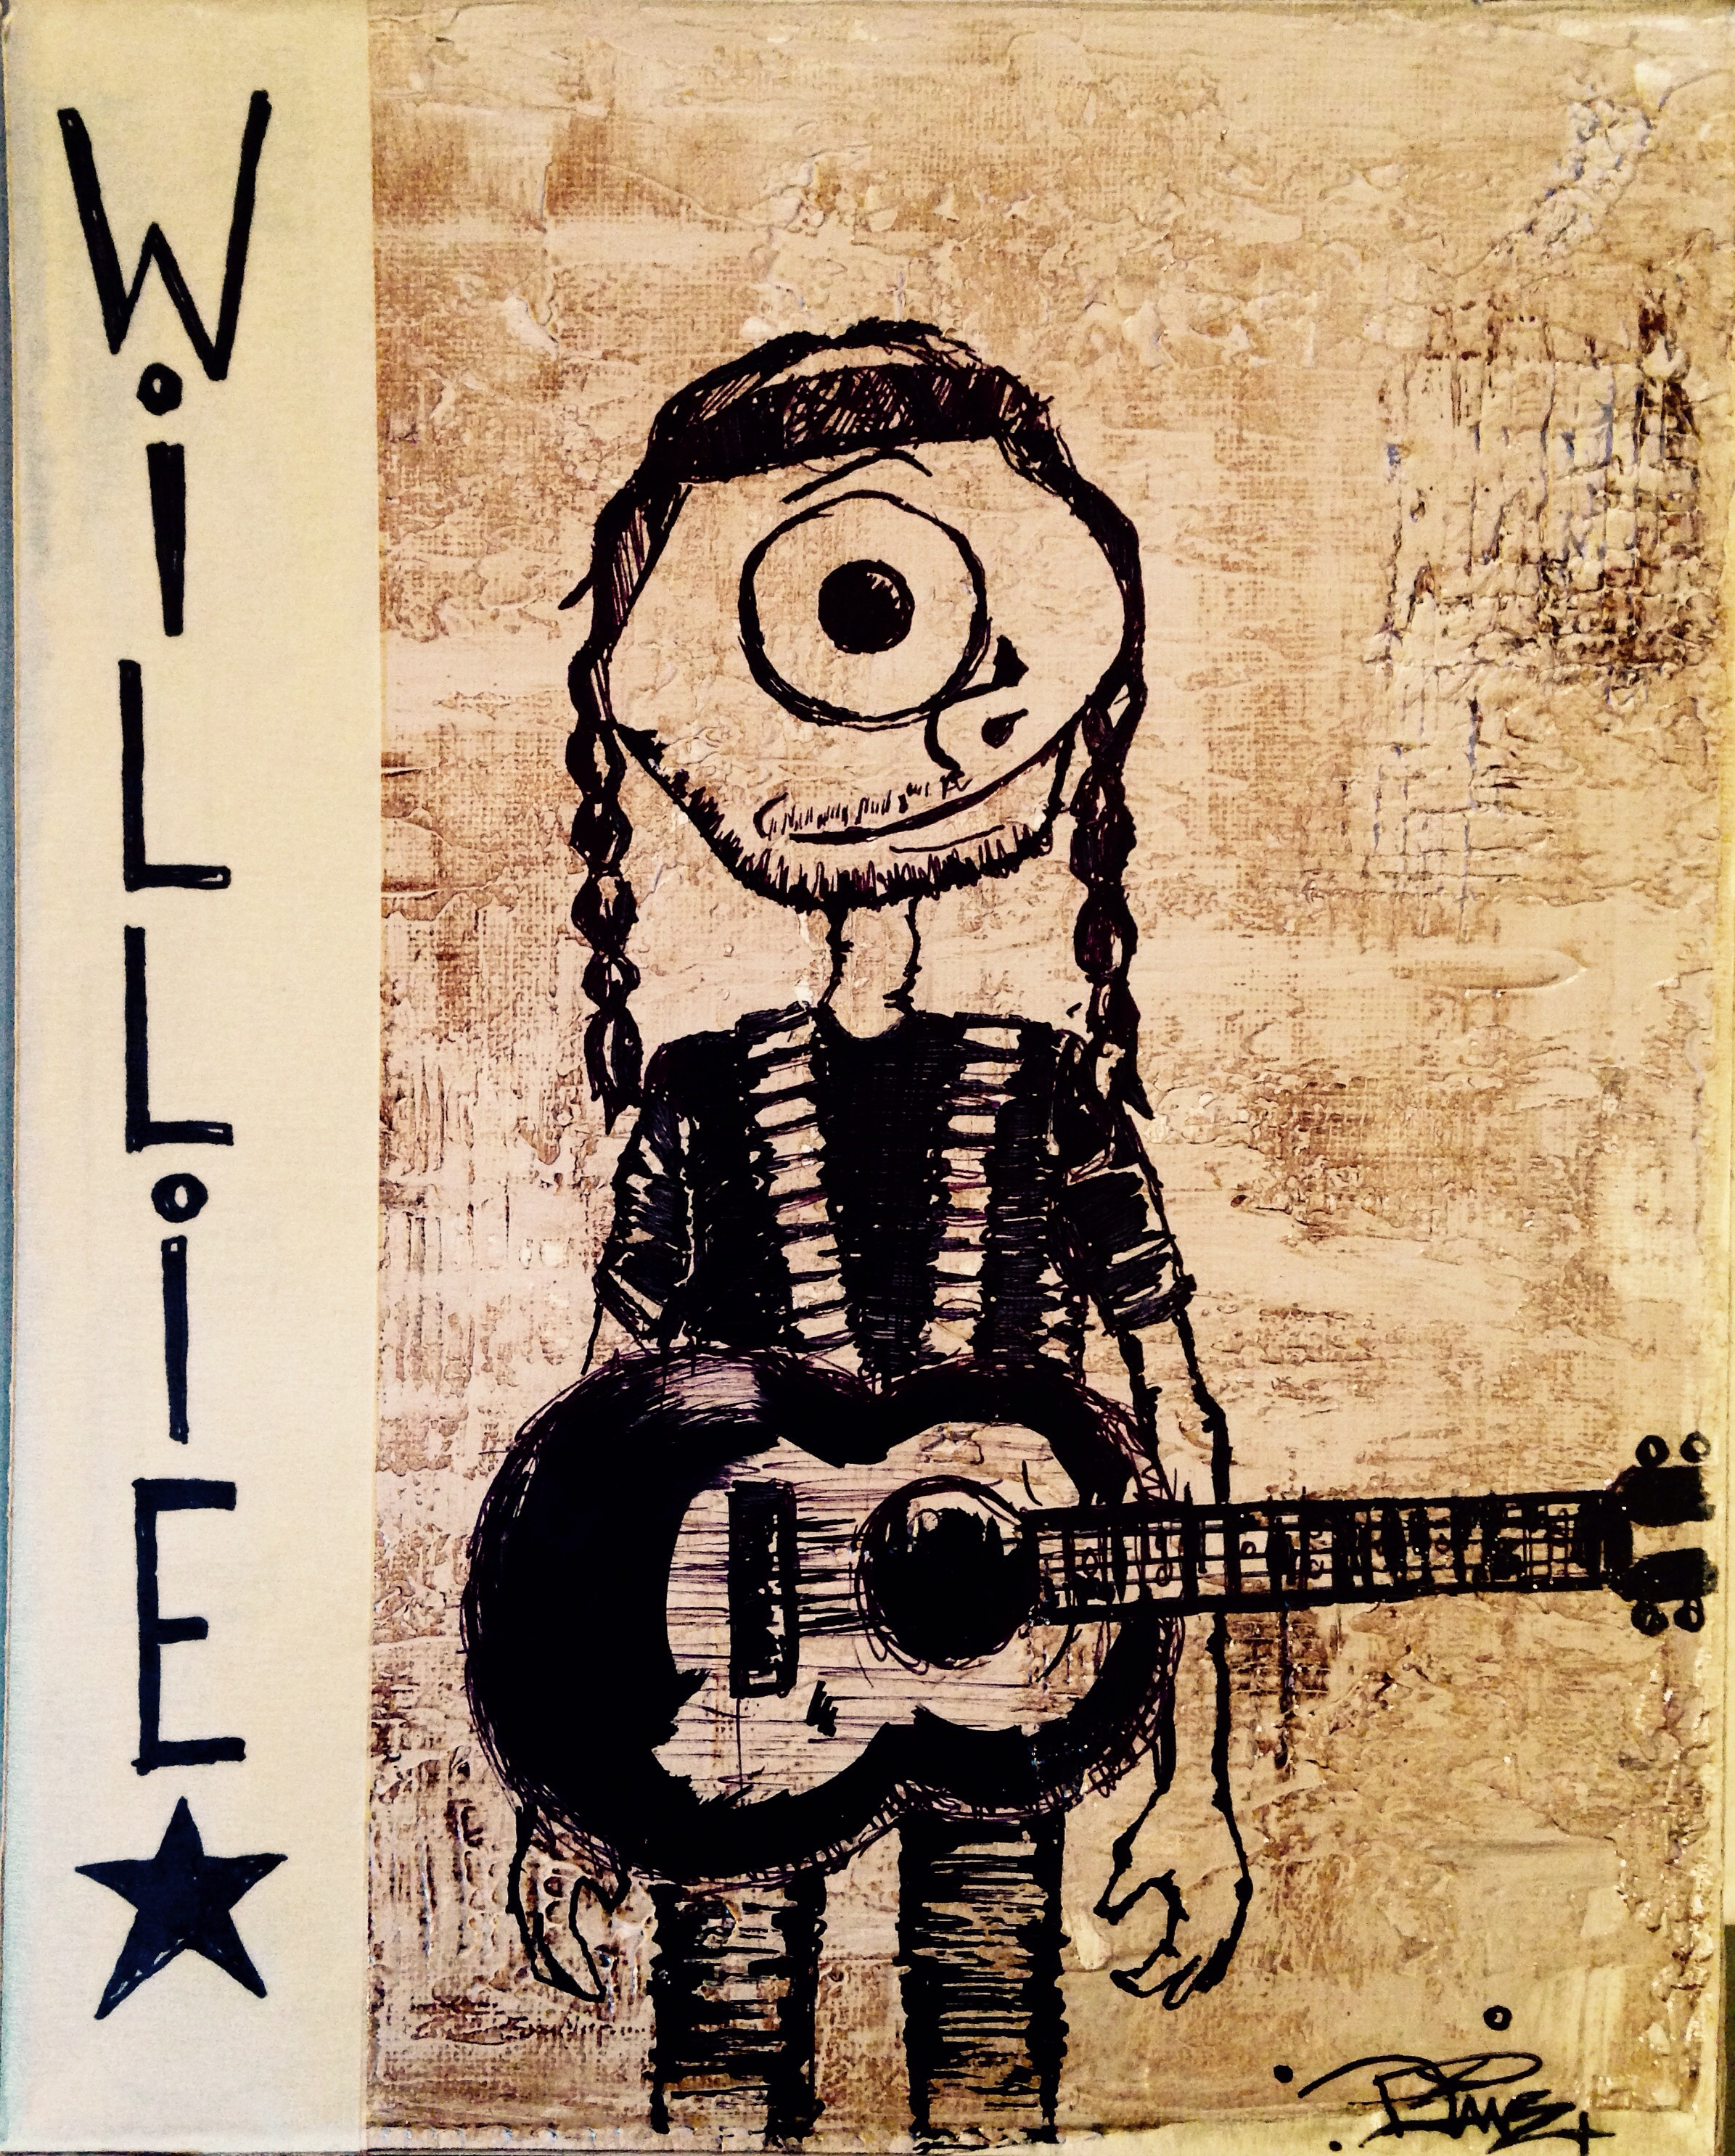 Willie. Blue eye cryin in the wind...